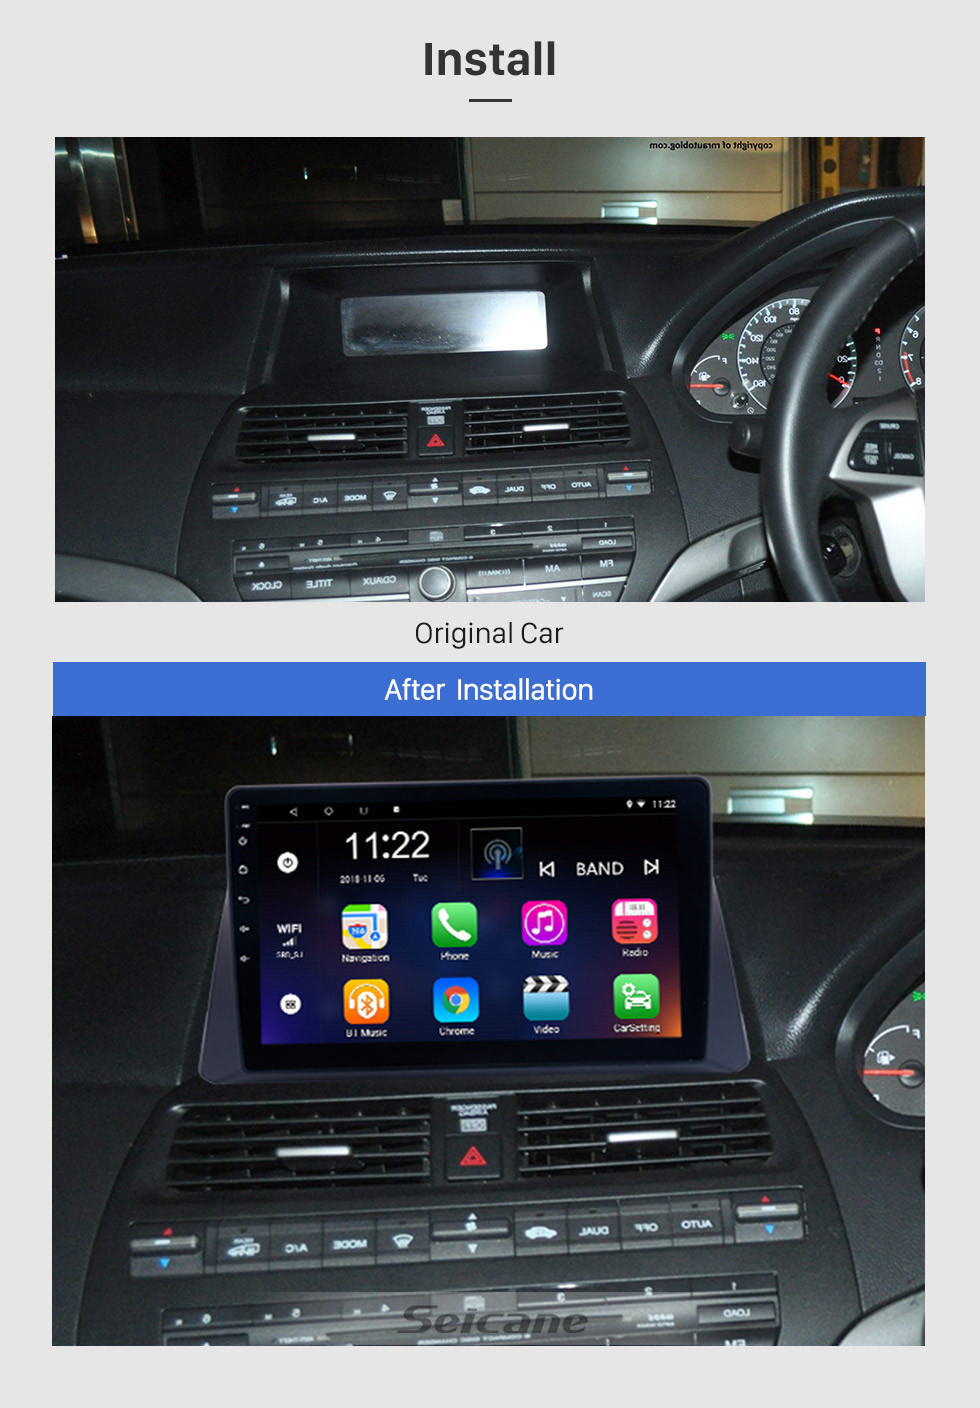 10.1 inch Android 8.1 Radio GPS Navigation for Honda Accord 8 2008 2009 2010 2011 2012 Bluetooth Music WiFi USB Mirror Link Car Stereo Support DVR OBD2 Steering Wheel Control Backup Camera